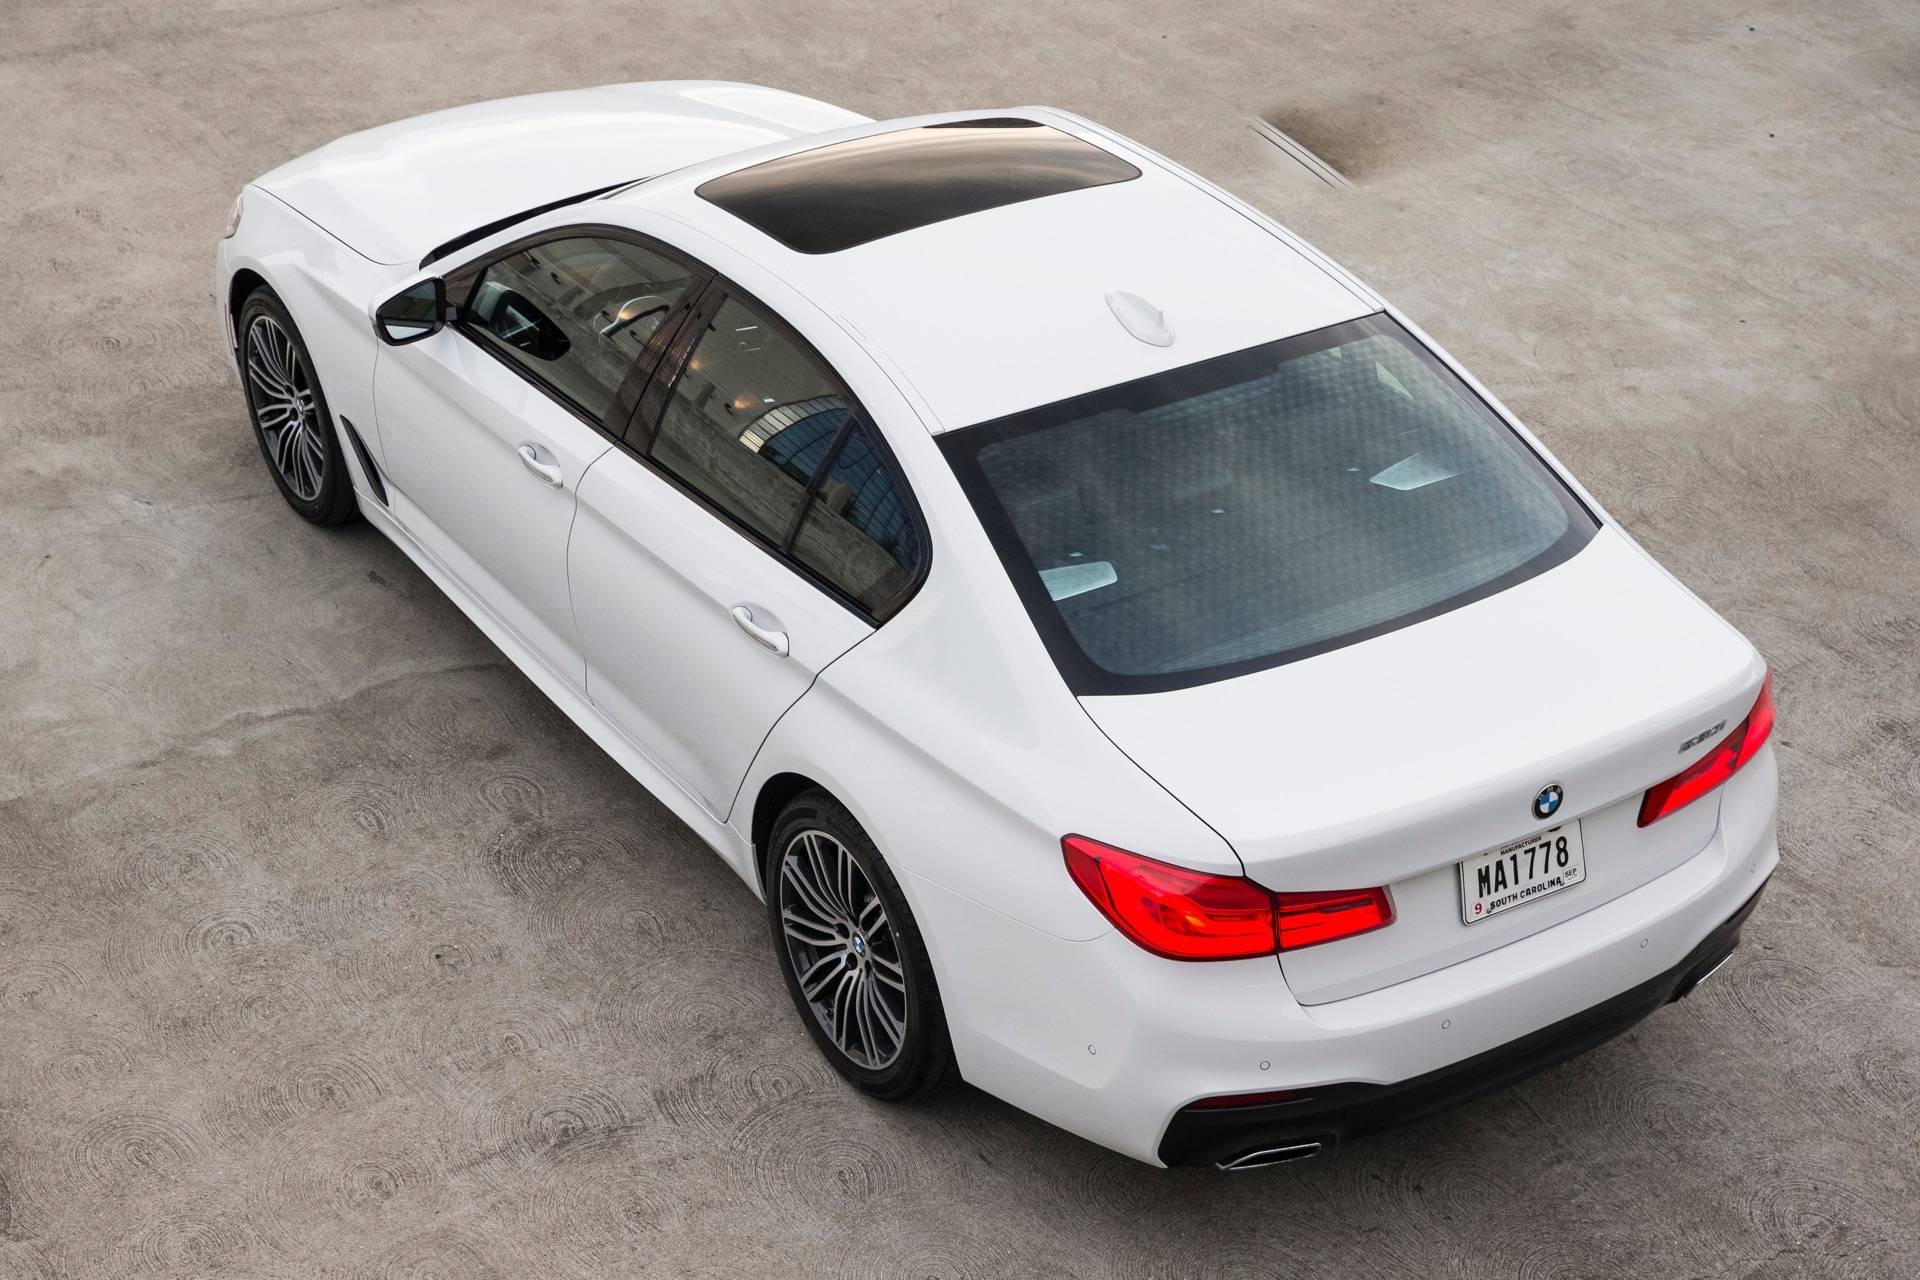 BMW 5 Series: For US owners only